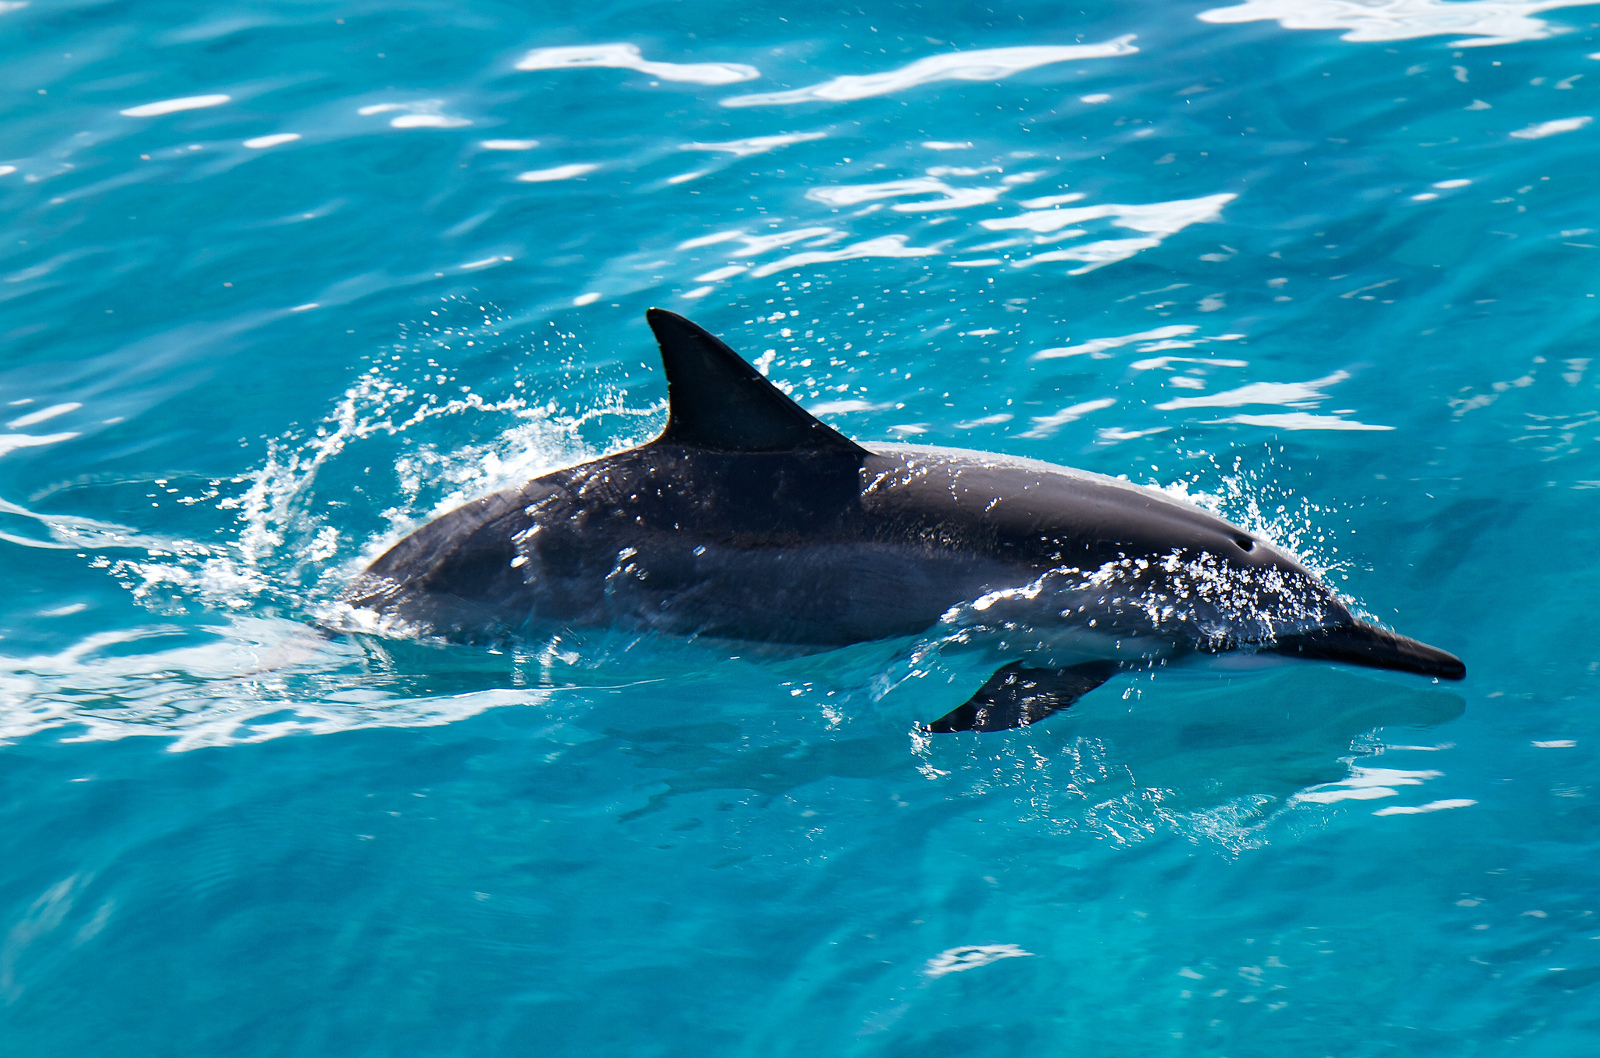 How Creating Marine Sanctuaries is Helping Endangered Sharks, Whales and Dolphins in the Wild